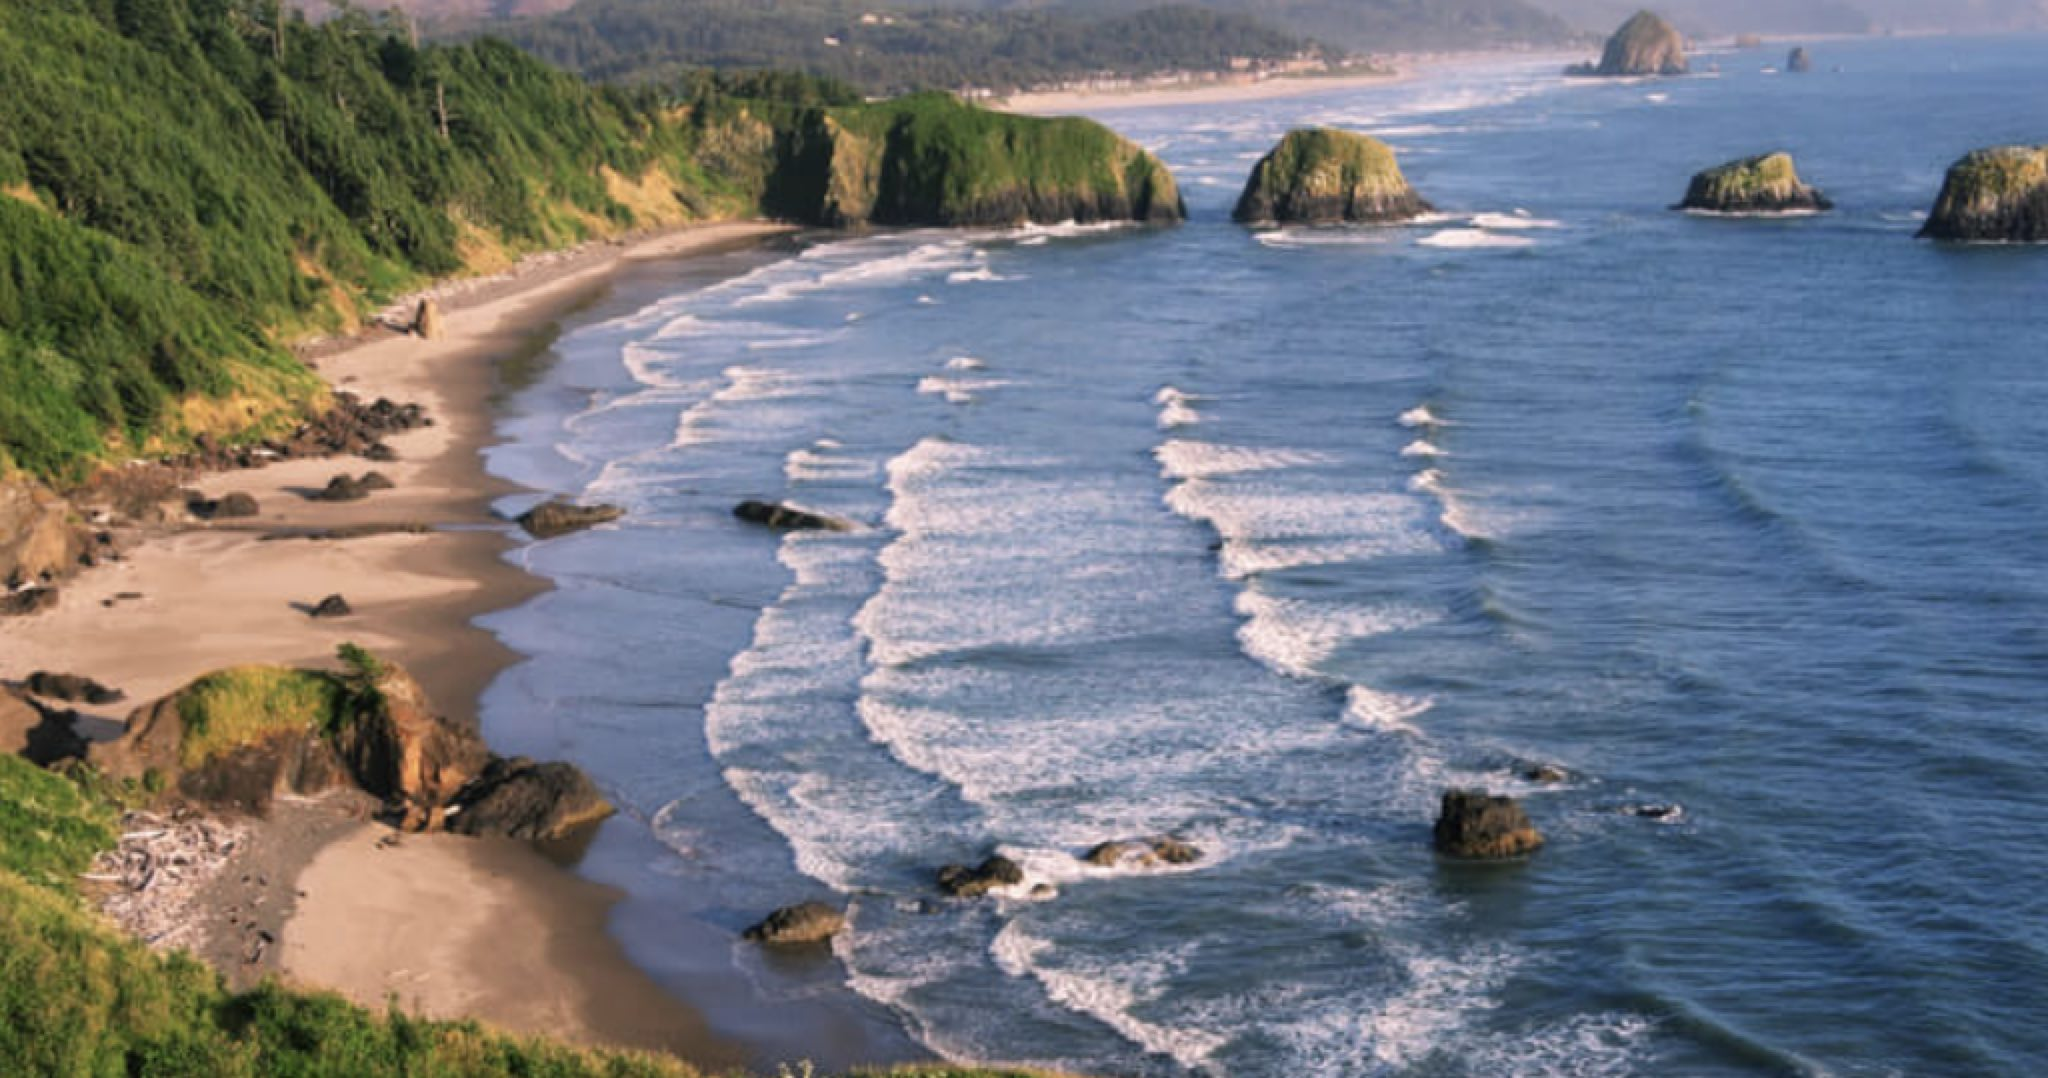 The Top 3 Oregon Coast Hikes